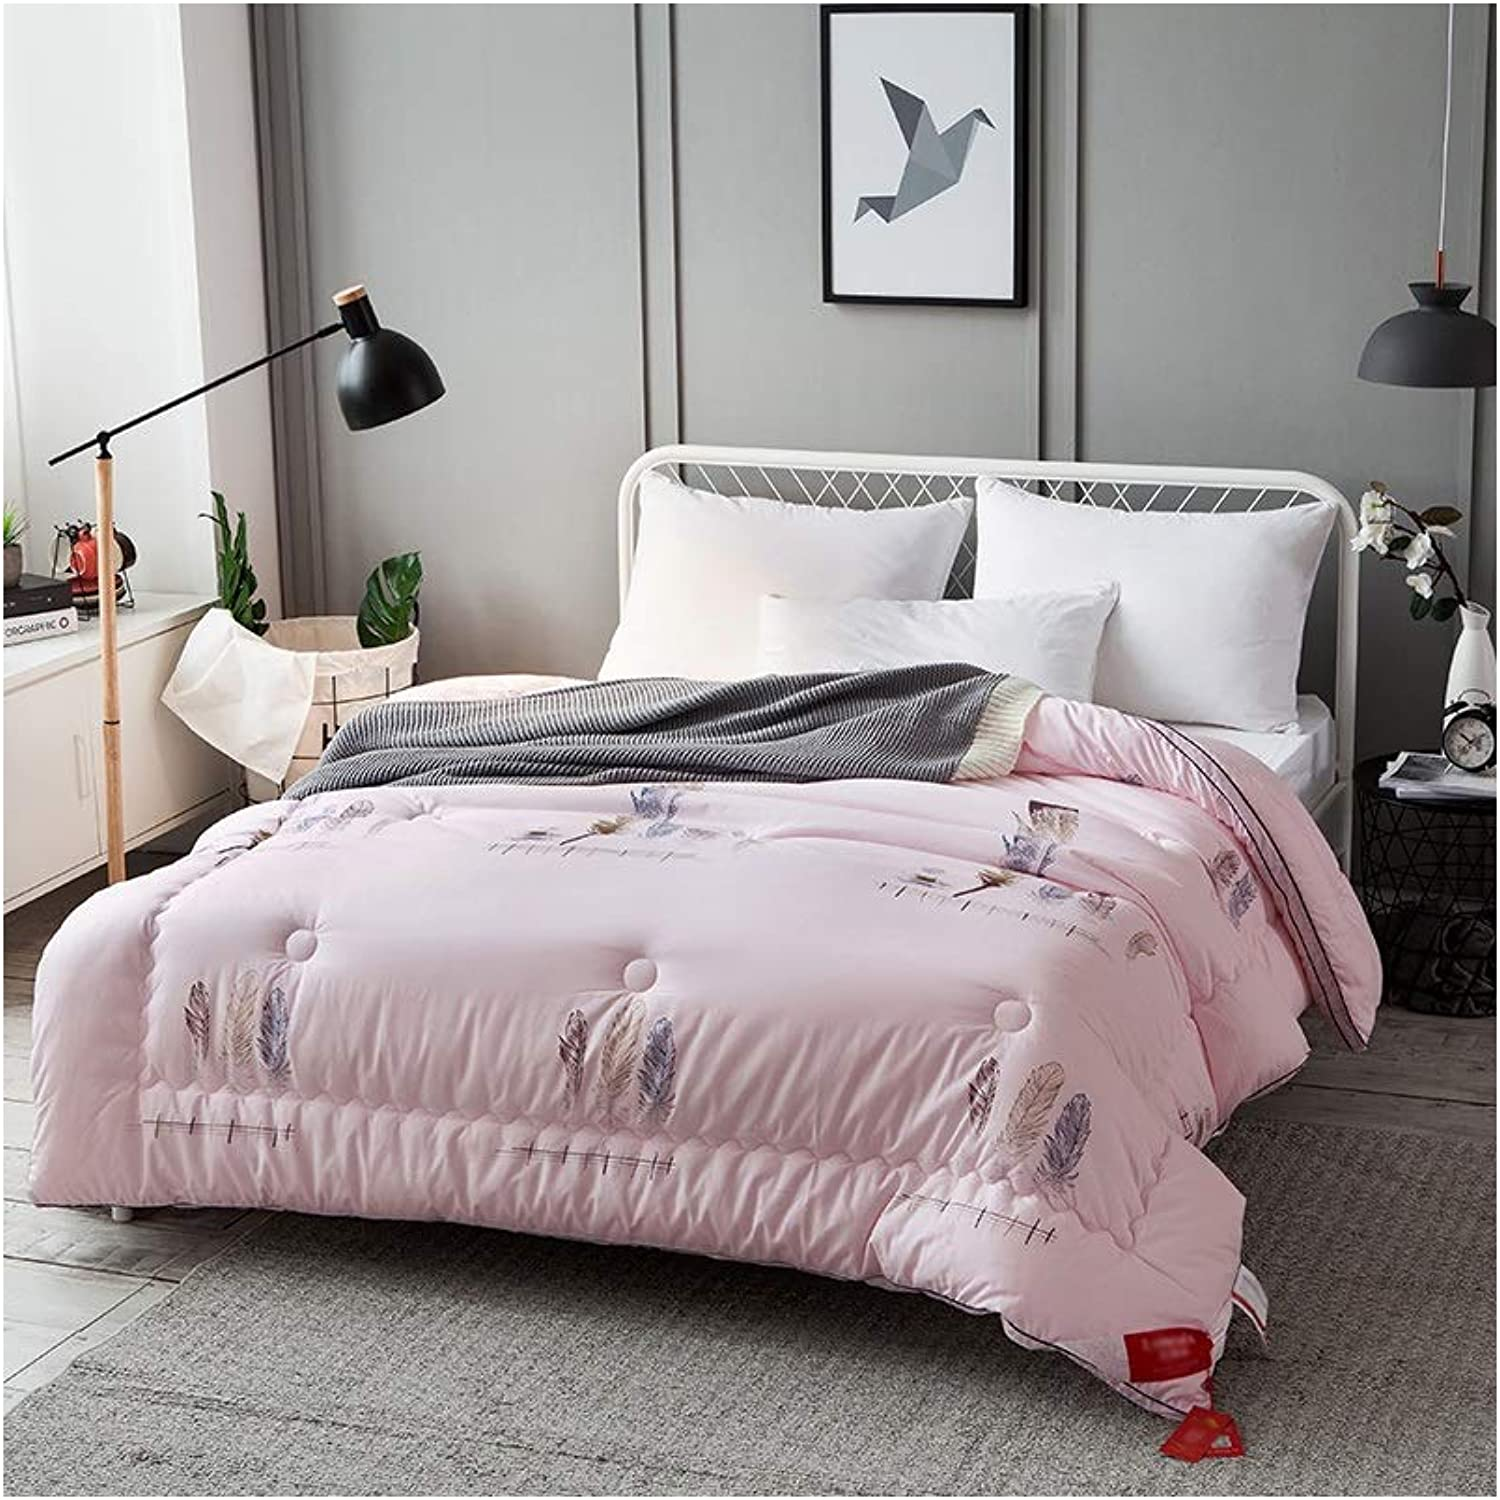 Warm Quilt Exquisite Duvet Winter Thickened Warm Single Double Bedding - Pink Comforter Family Student Dormitory - Pure Cotton Fabric Fashion Printing Quilt Antiallergic Quilt